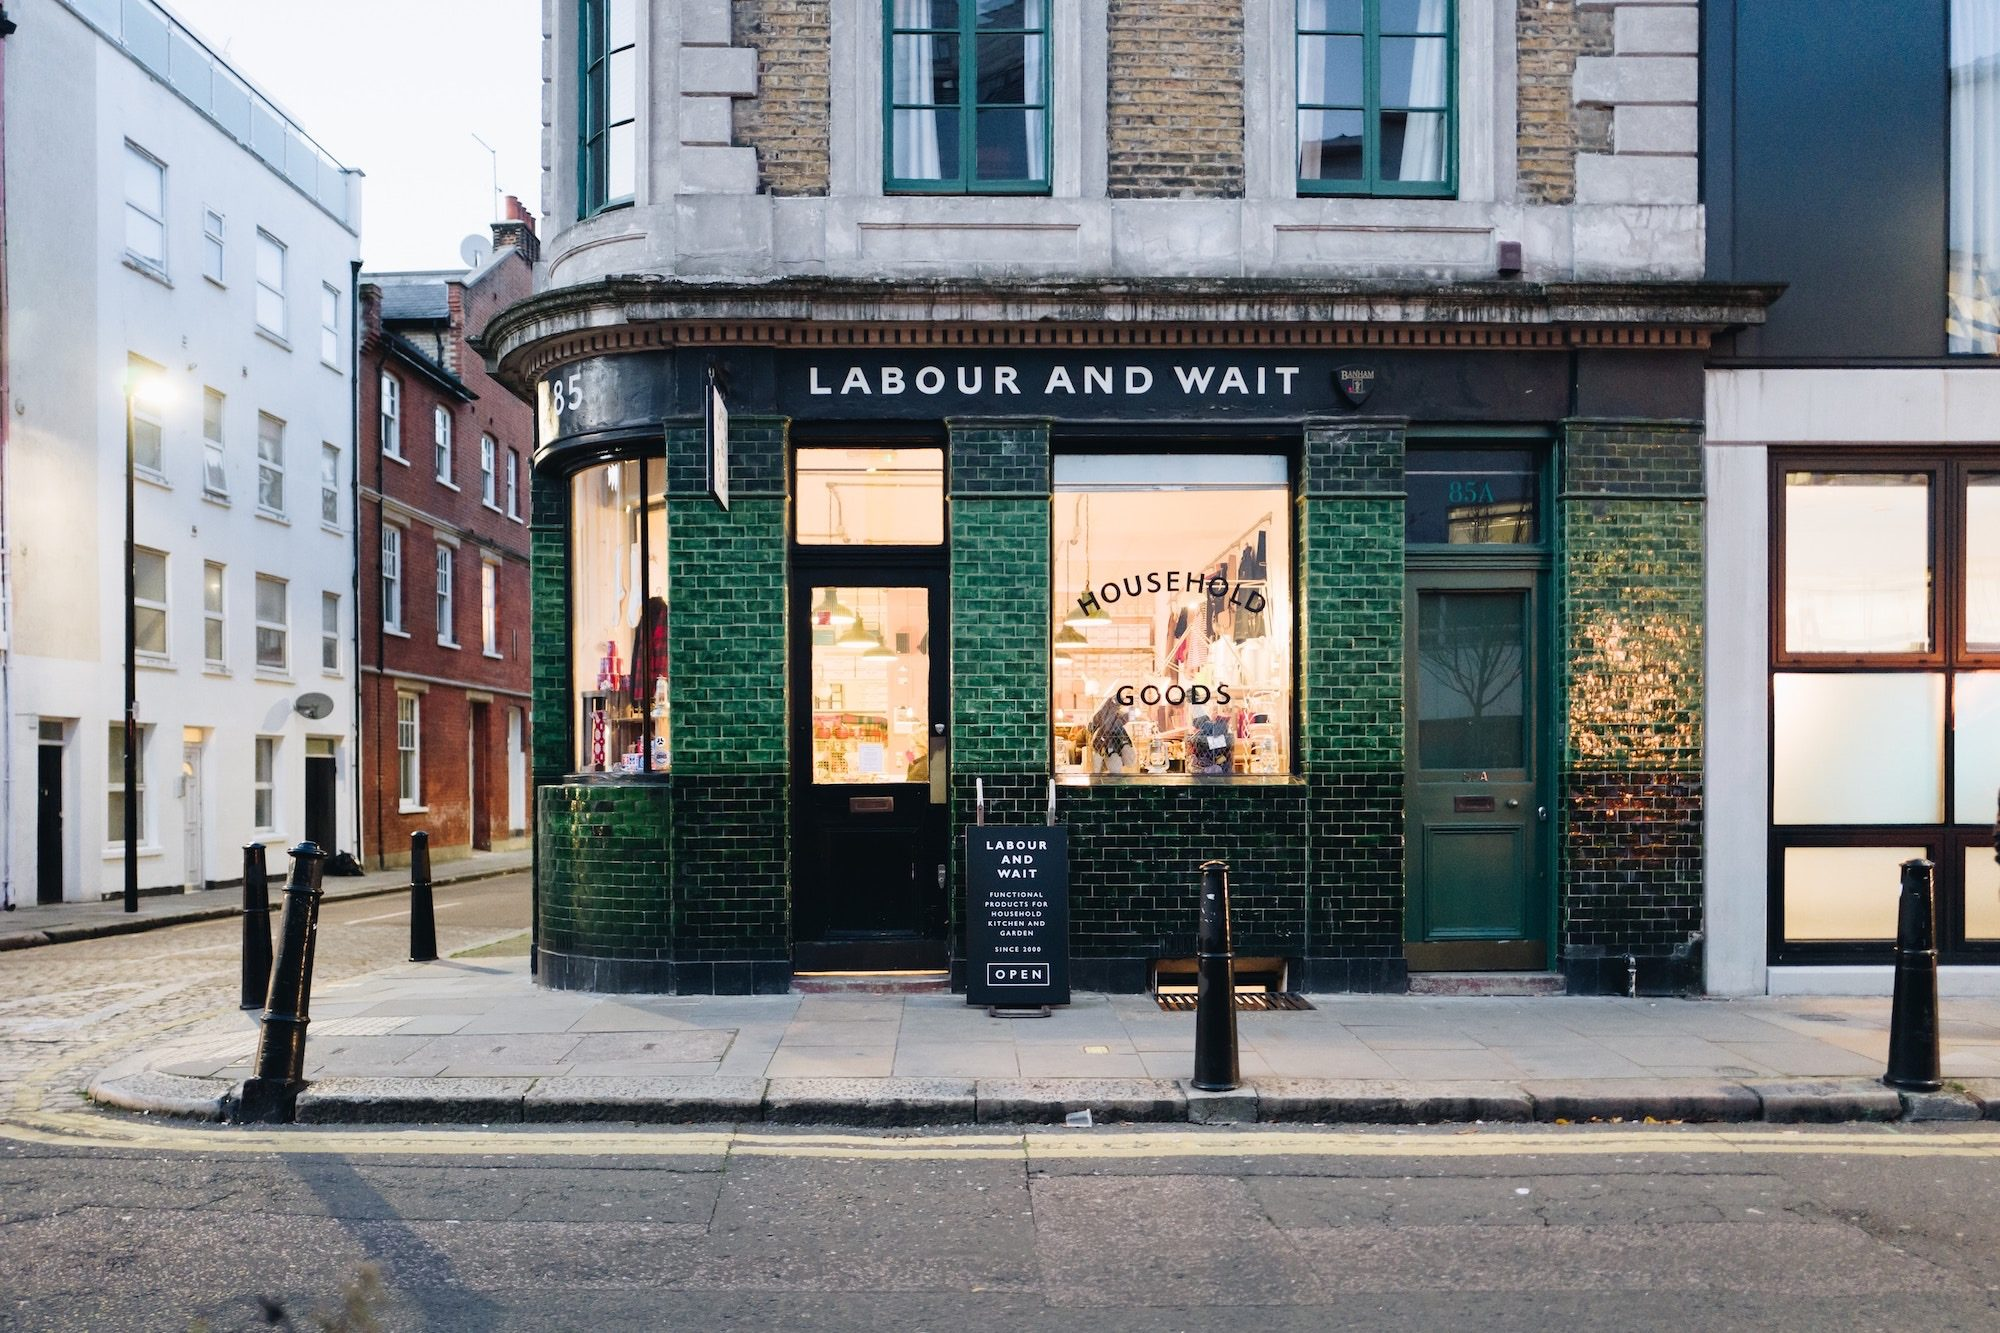 In East London, pubs have been converted into concept stores selling handmade goods like at Labour and Wait.